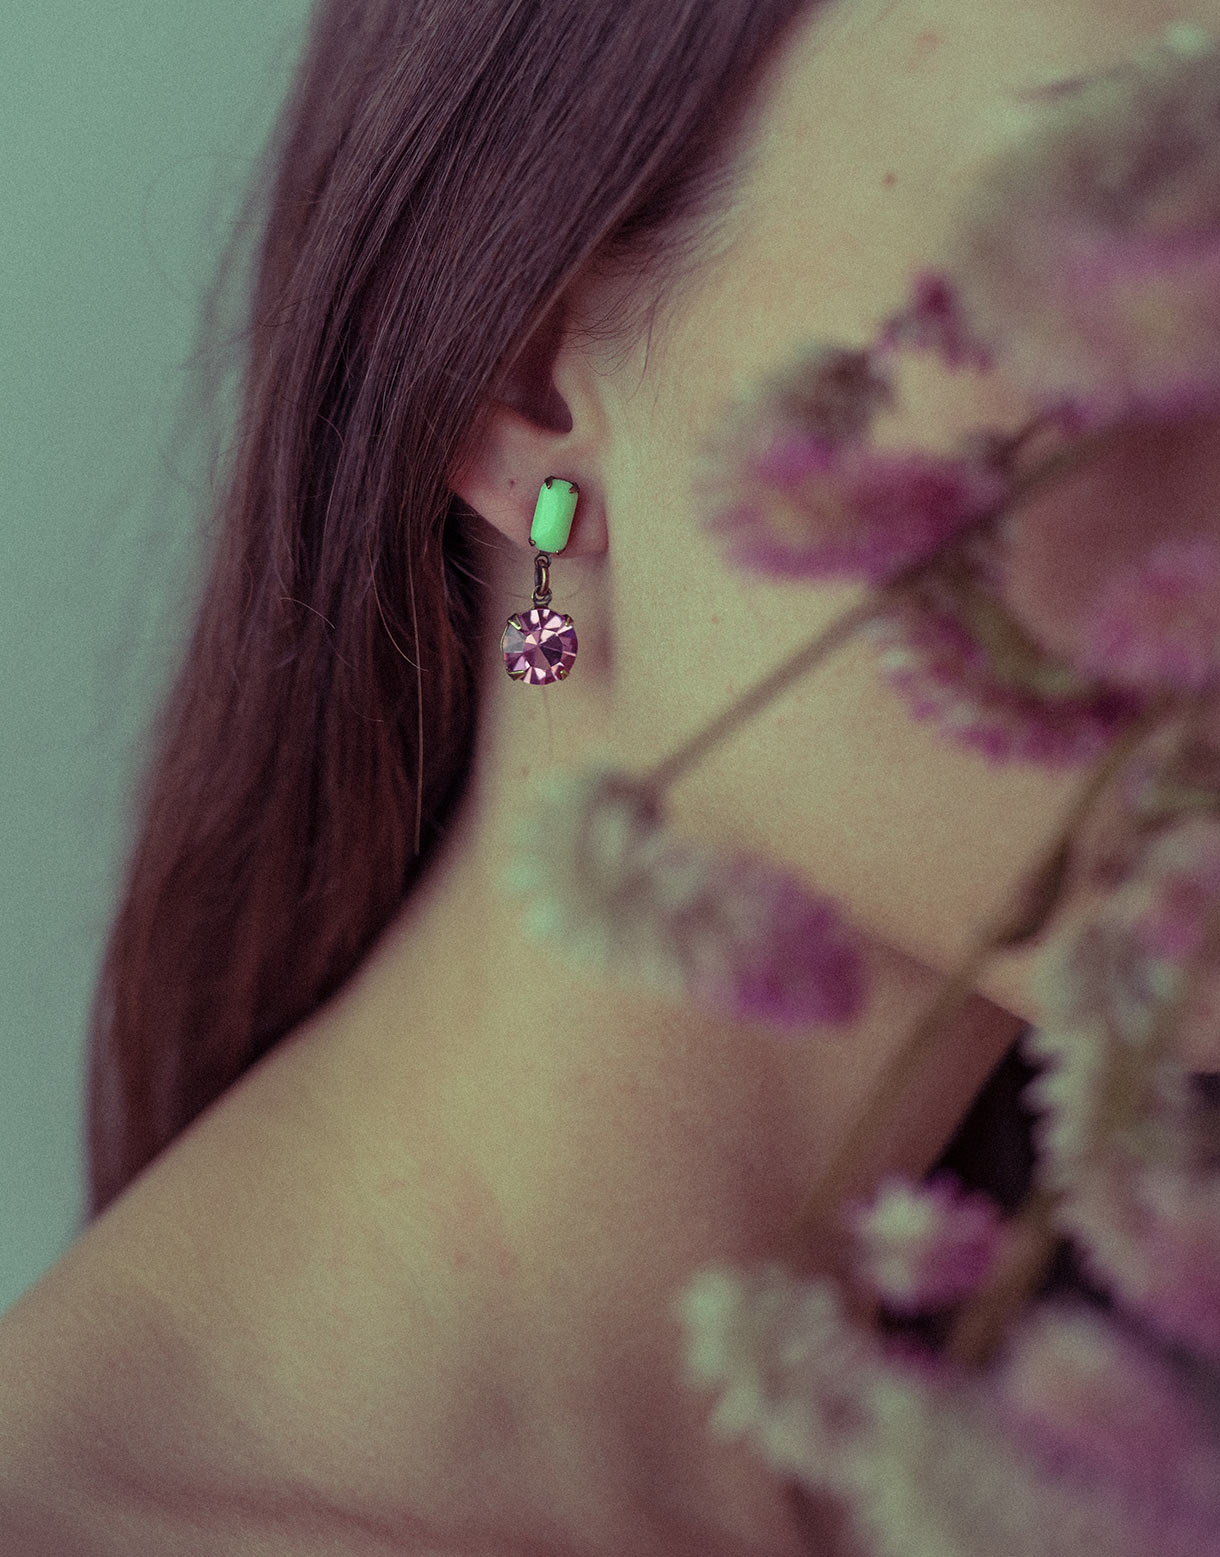 Vintage rose green earrings